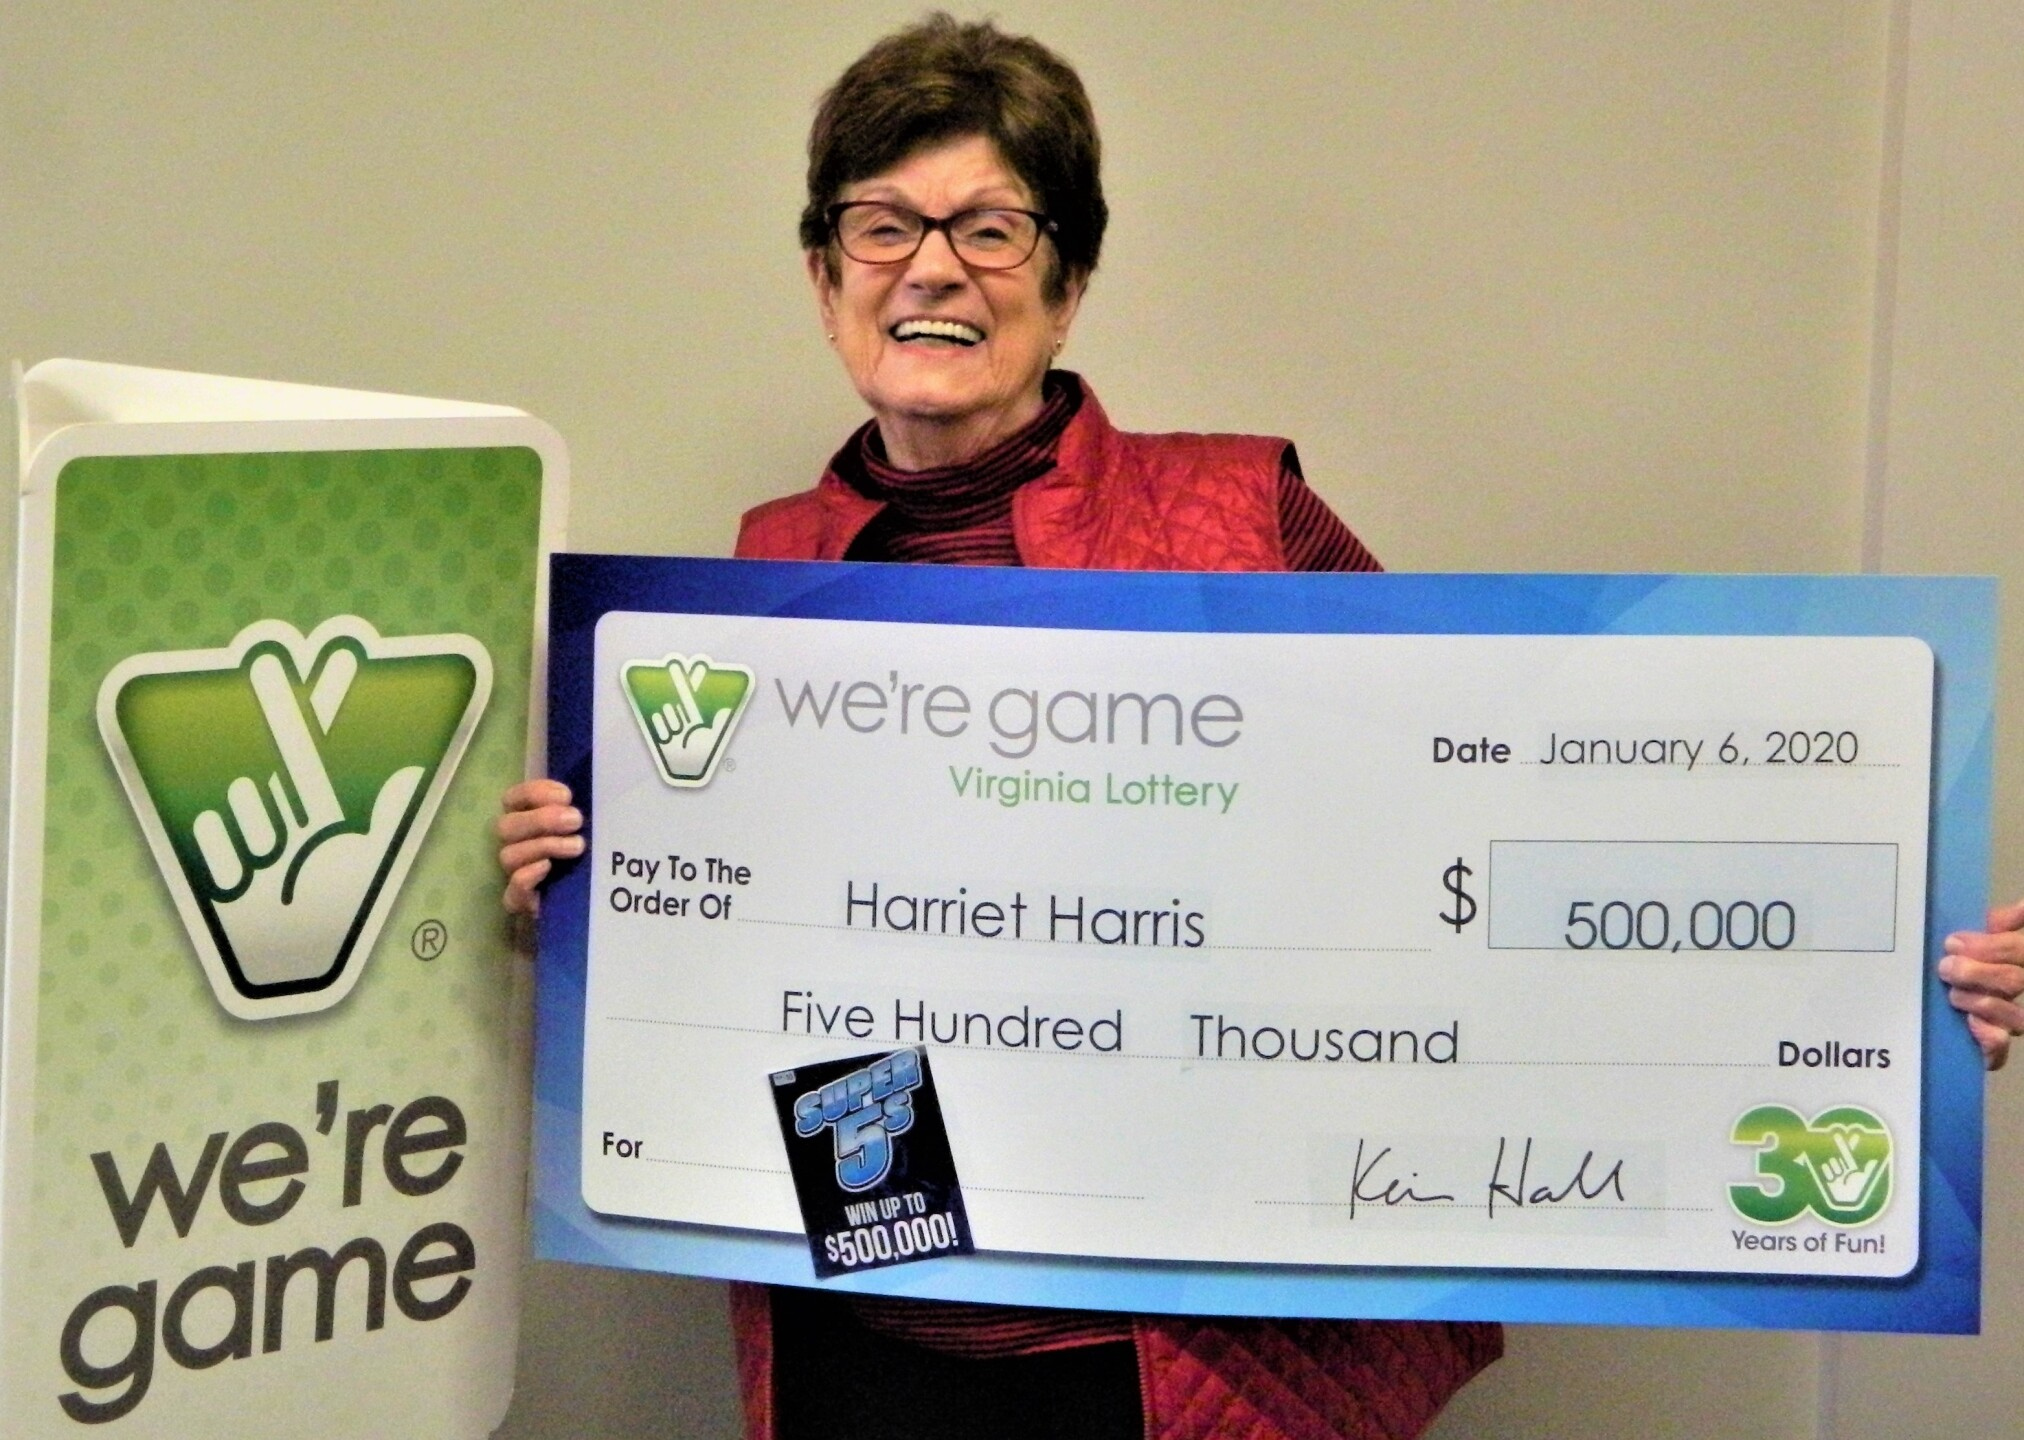 Photos: Williamsburg woman receives $500,000 winning lottery ticket in Christmasstocking